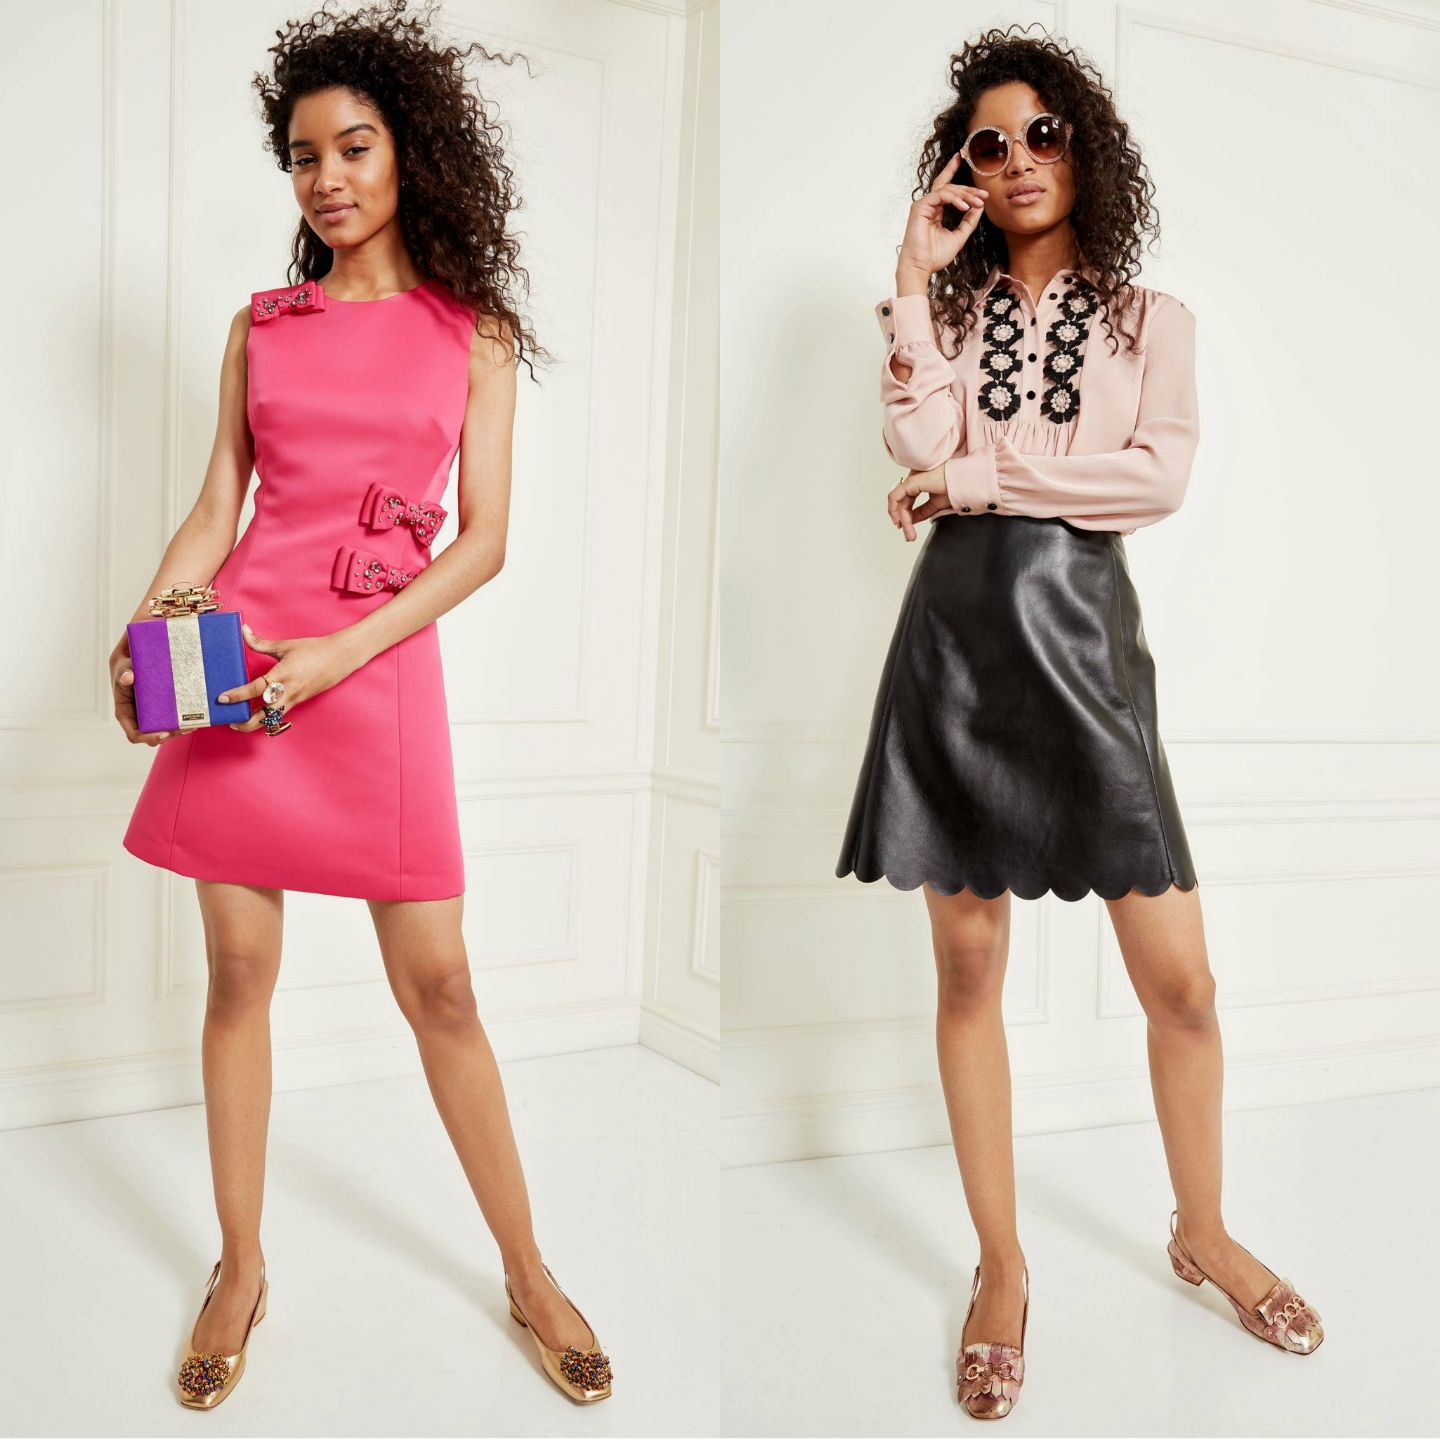 Eniwhere Fashion - Resort Collection - Kate Spade